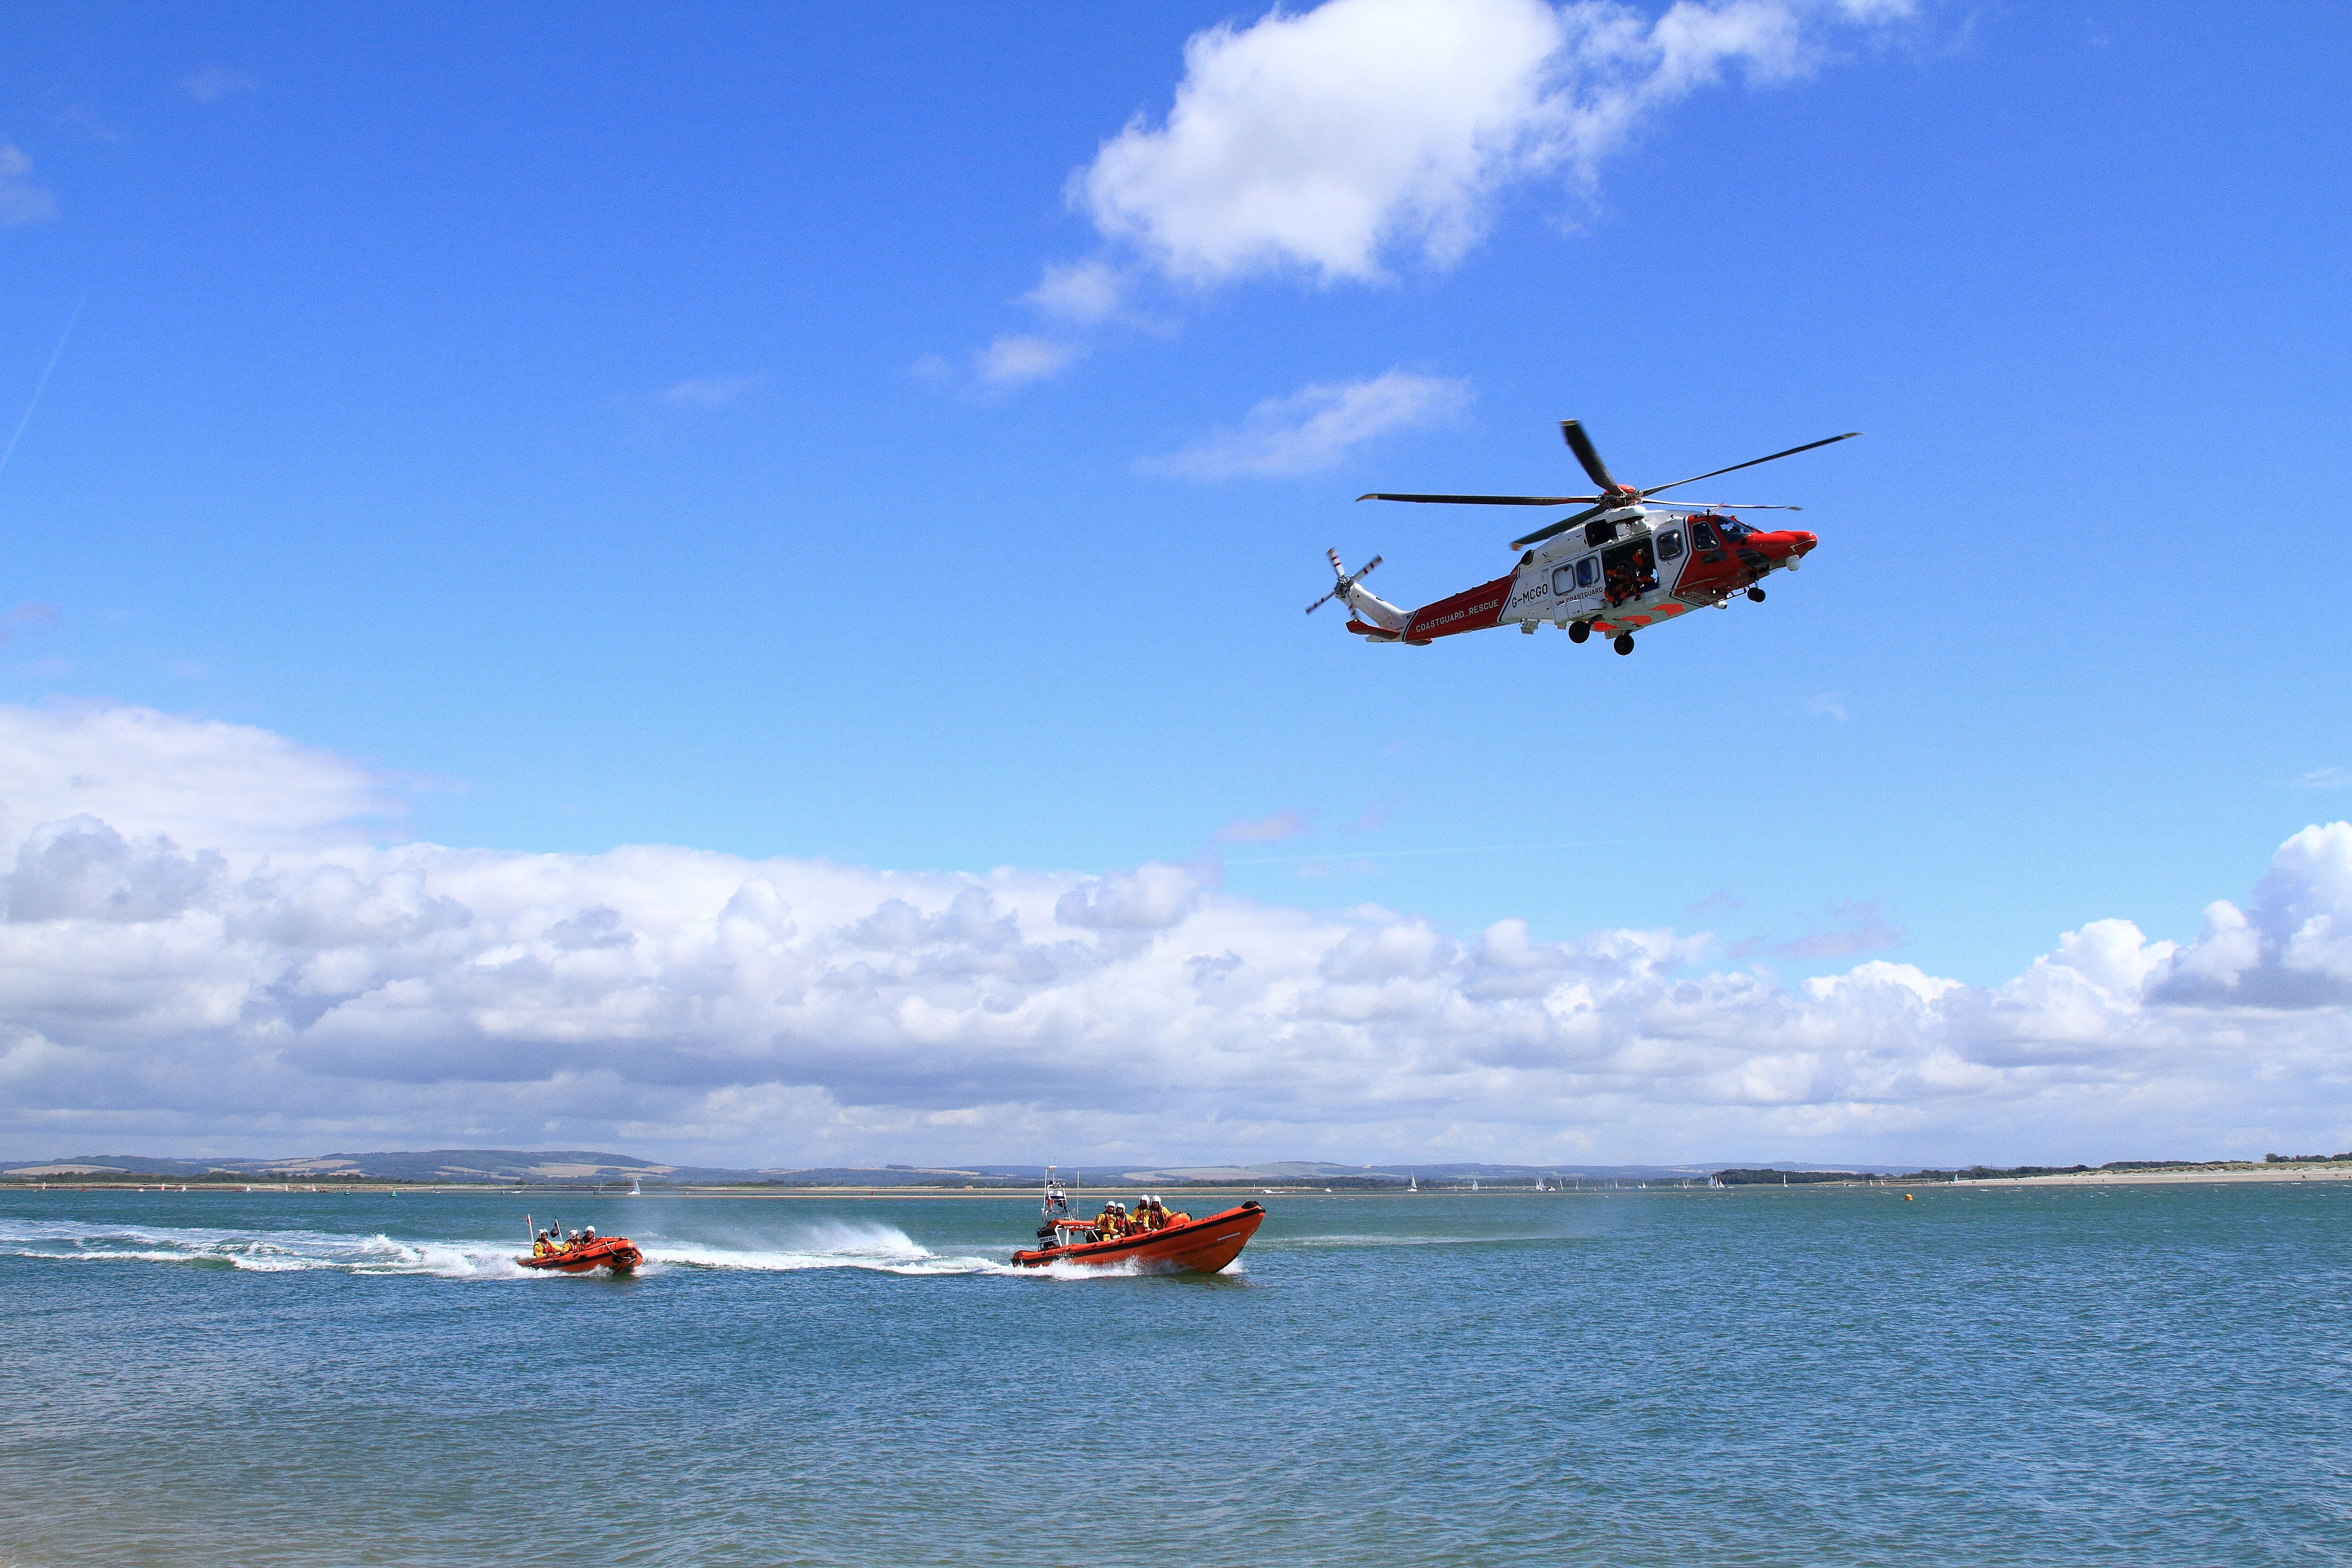 Two lifeboats and the Search and Rescue helicopter involved in the rescue of the lady.